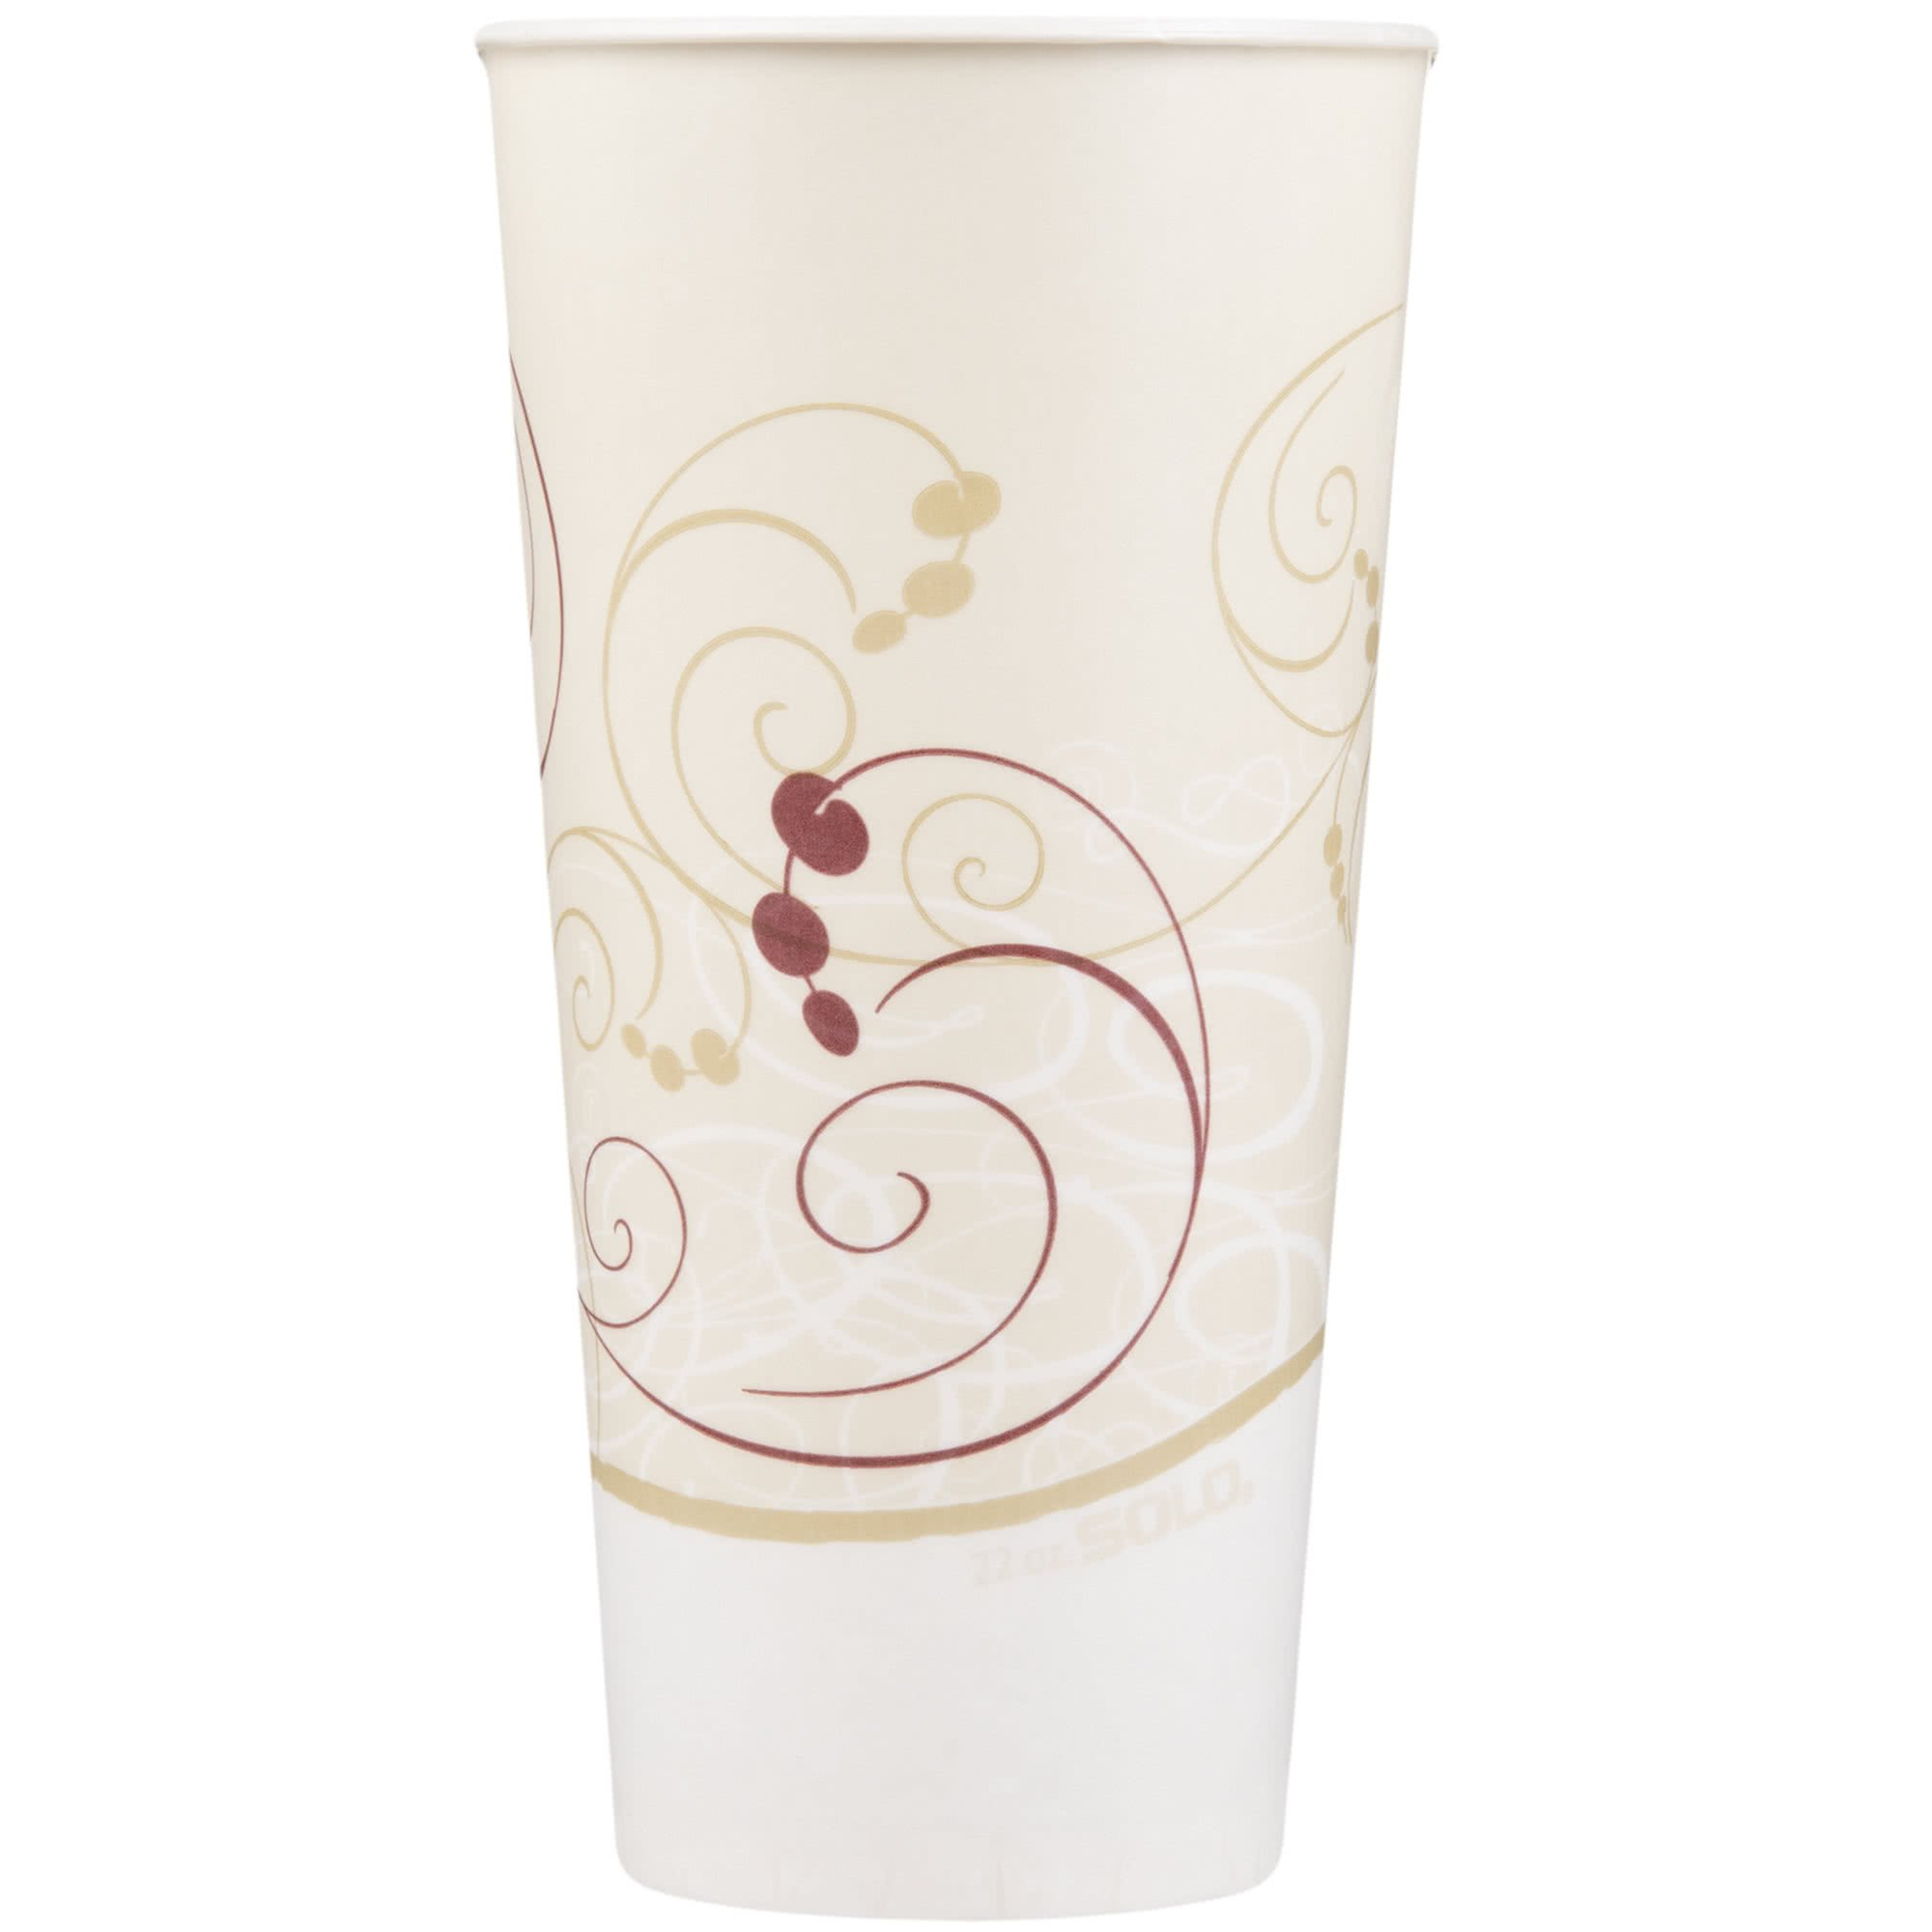 TableTop King RS22N-J8000 Symphony 22 oz. Wax Treated Paper Cold Cup - 1000/Case